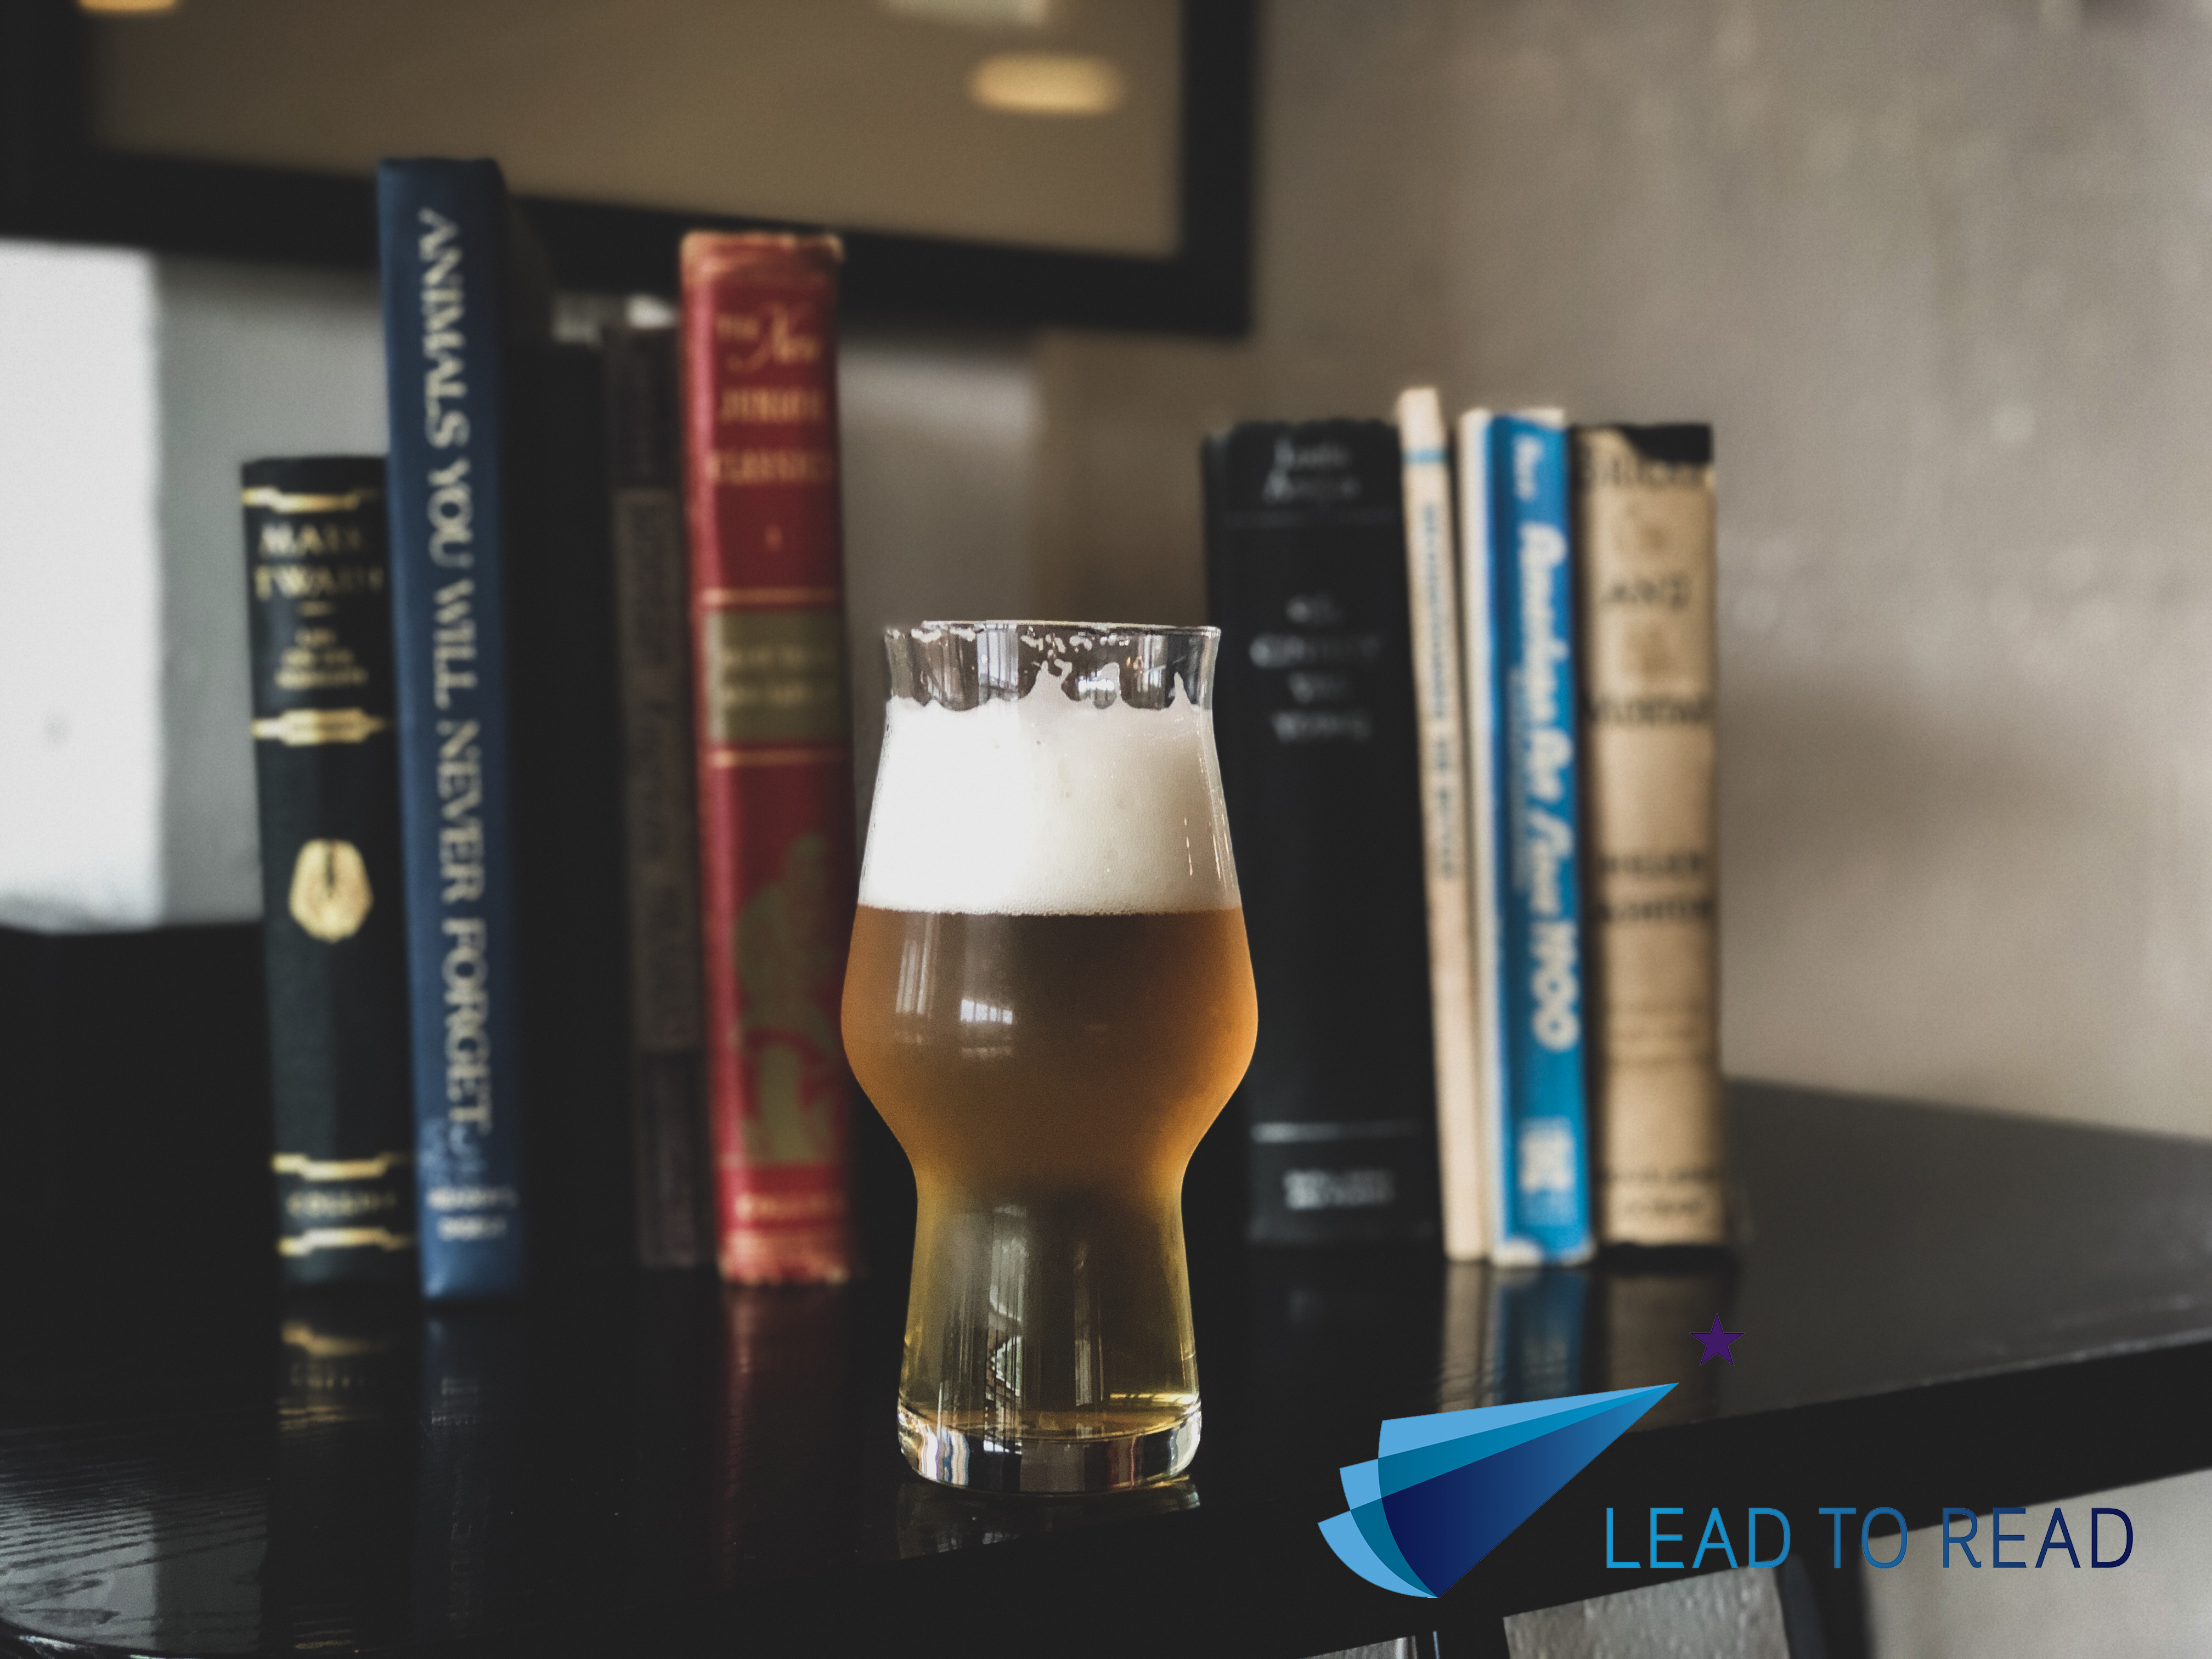 Lead to Read Trivia - Beer & Books